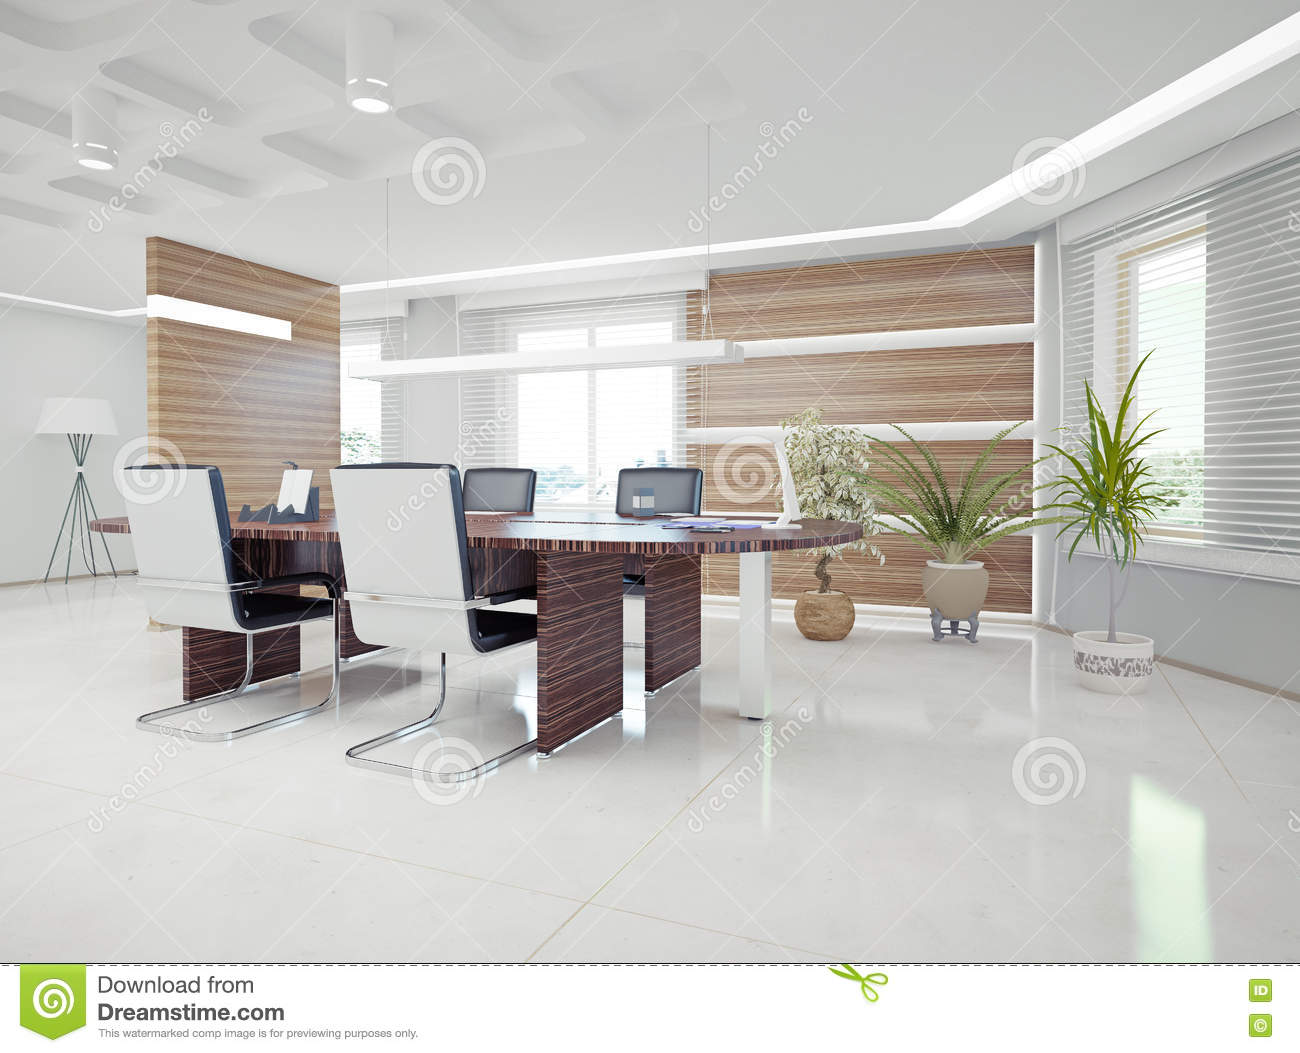 modern office interior stock illustration. illustration of